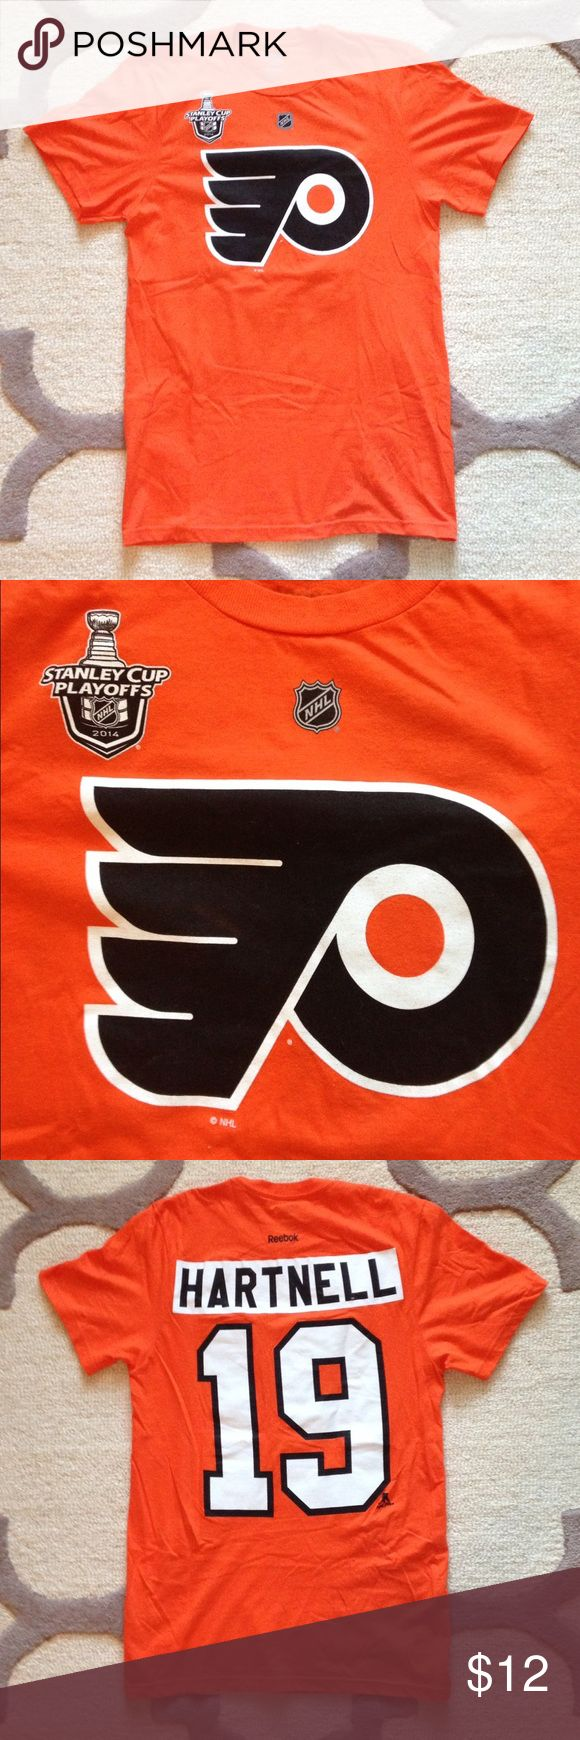 """Flyers Hartnell Jersey T-Shirt - NHL Shop Flyers Hartnell T-Shirt by Reebok. Bought at the NHL store. Authentic Flyers merchandise. T-Shirt from the 2014 playoffs. New without tags. Perfect condition. Reebok Size Chart for S - 35-37"""", Waist: 29-31"""", Hip: 36-38"""", Inseam: 30"""" Reebok Shirts Tees - Short Sleeve"""